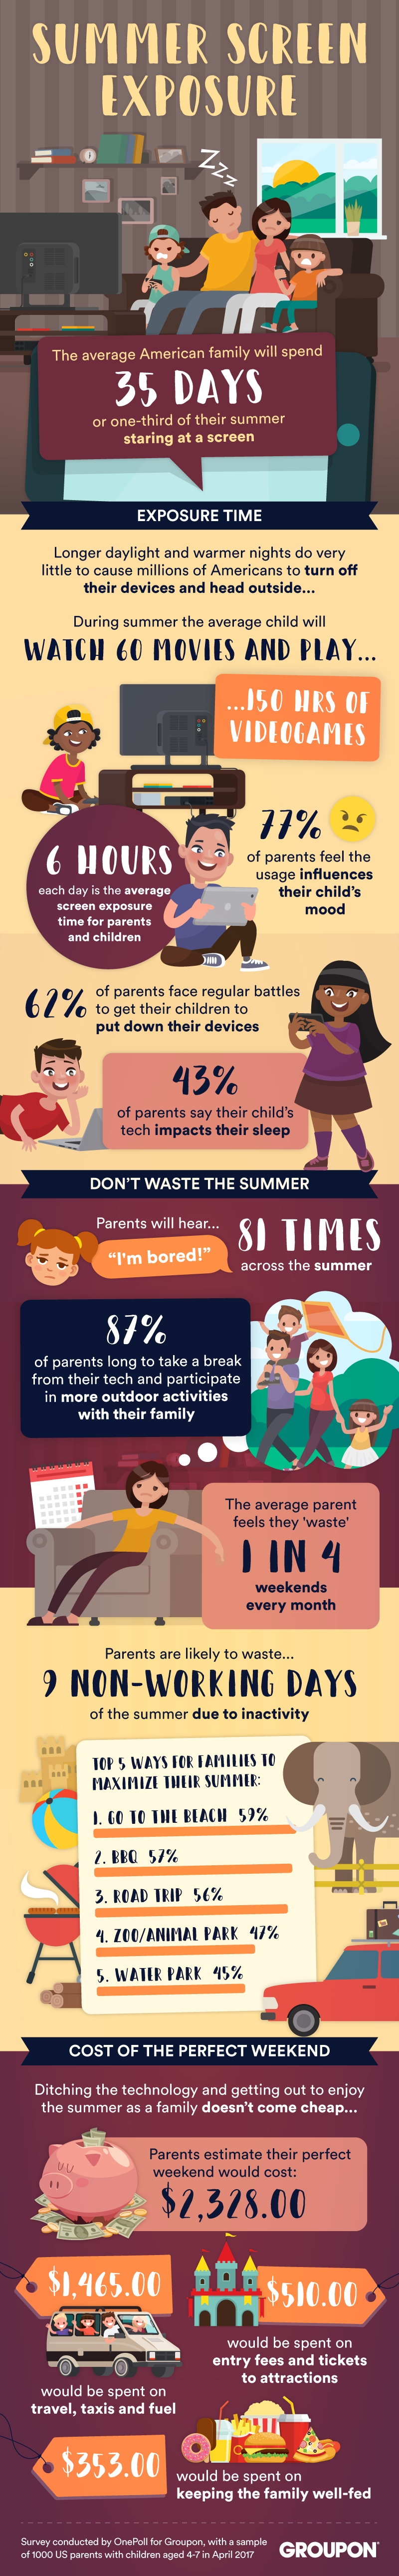 Groupon asked 1,000 U.S. parents how much time their families plan to spend on their electronic devices this summer, finding that the average American family will spend an average of 35 days of their summer, which is the equivalent of more than one-third, using their devices. (Photo: Business Wire)